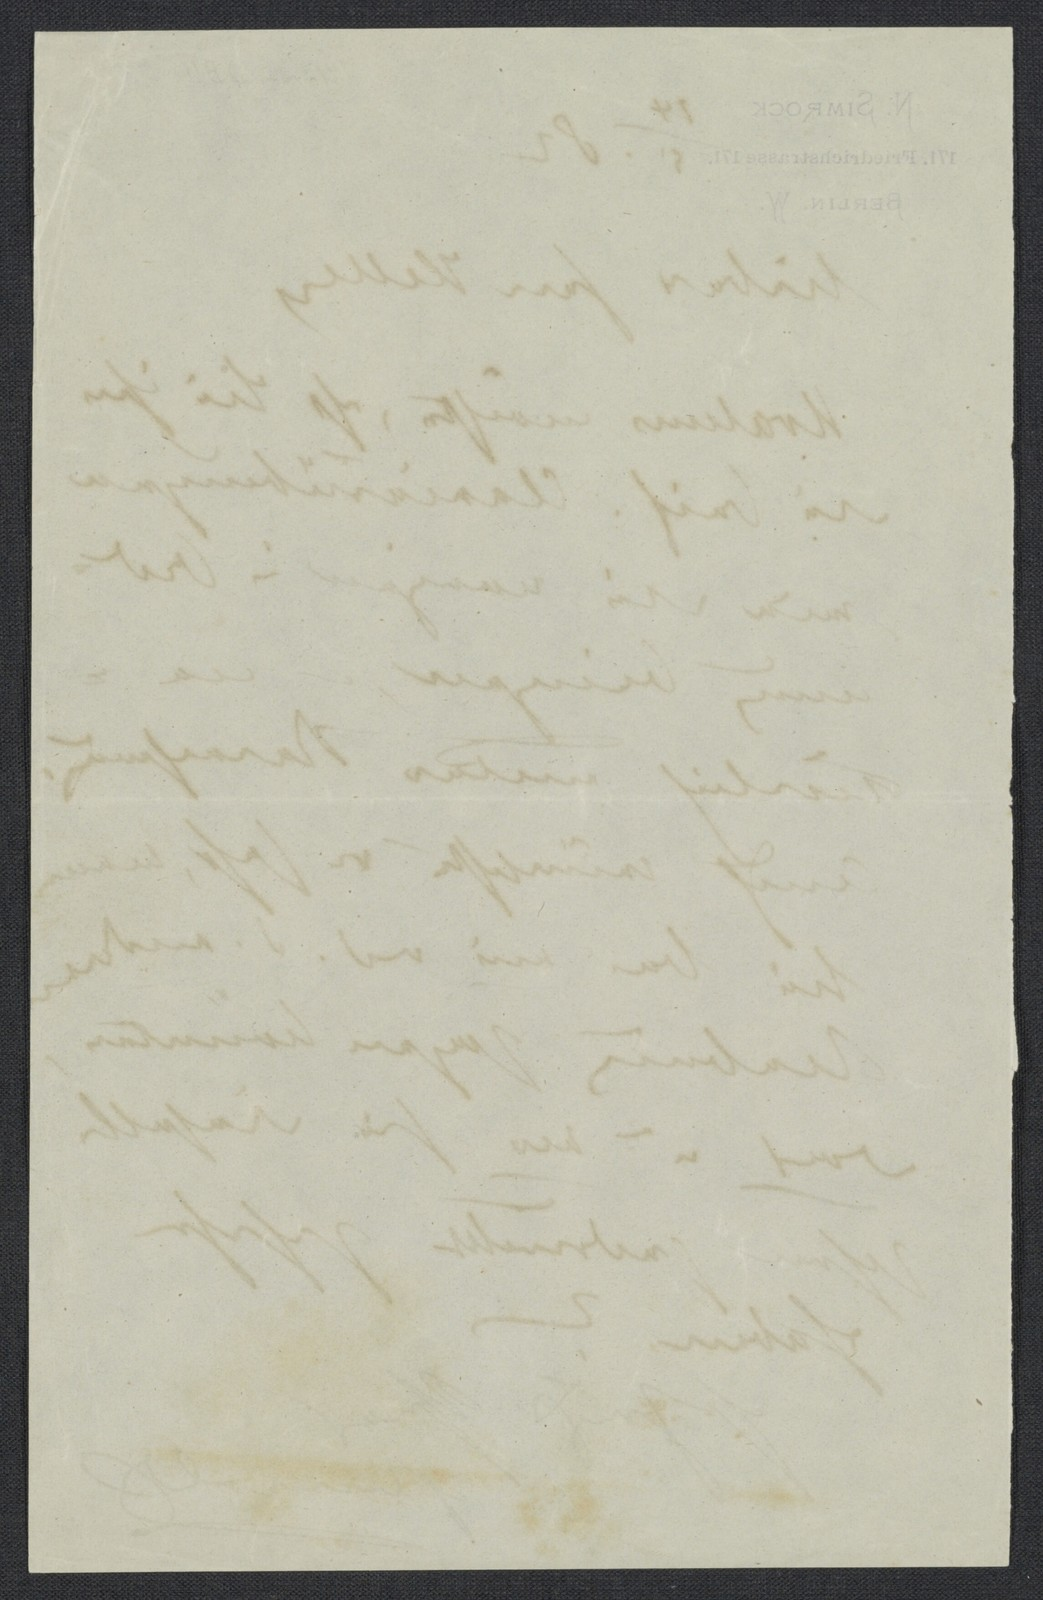 [Letter, 1882 May 14, Berlin to] Keller